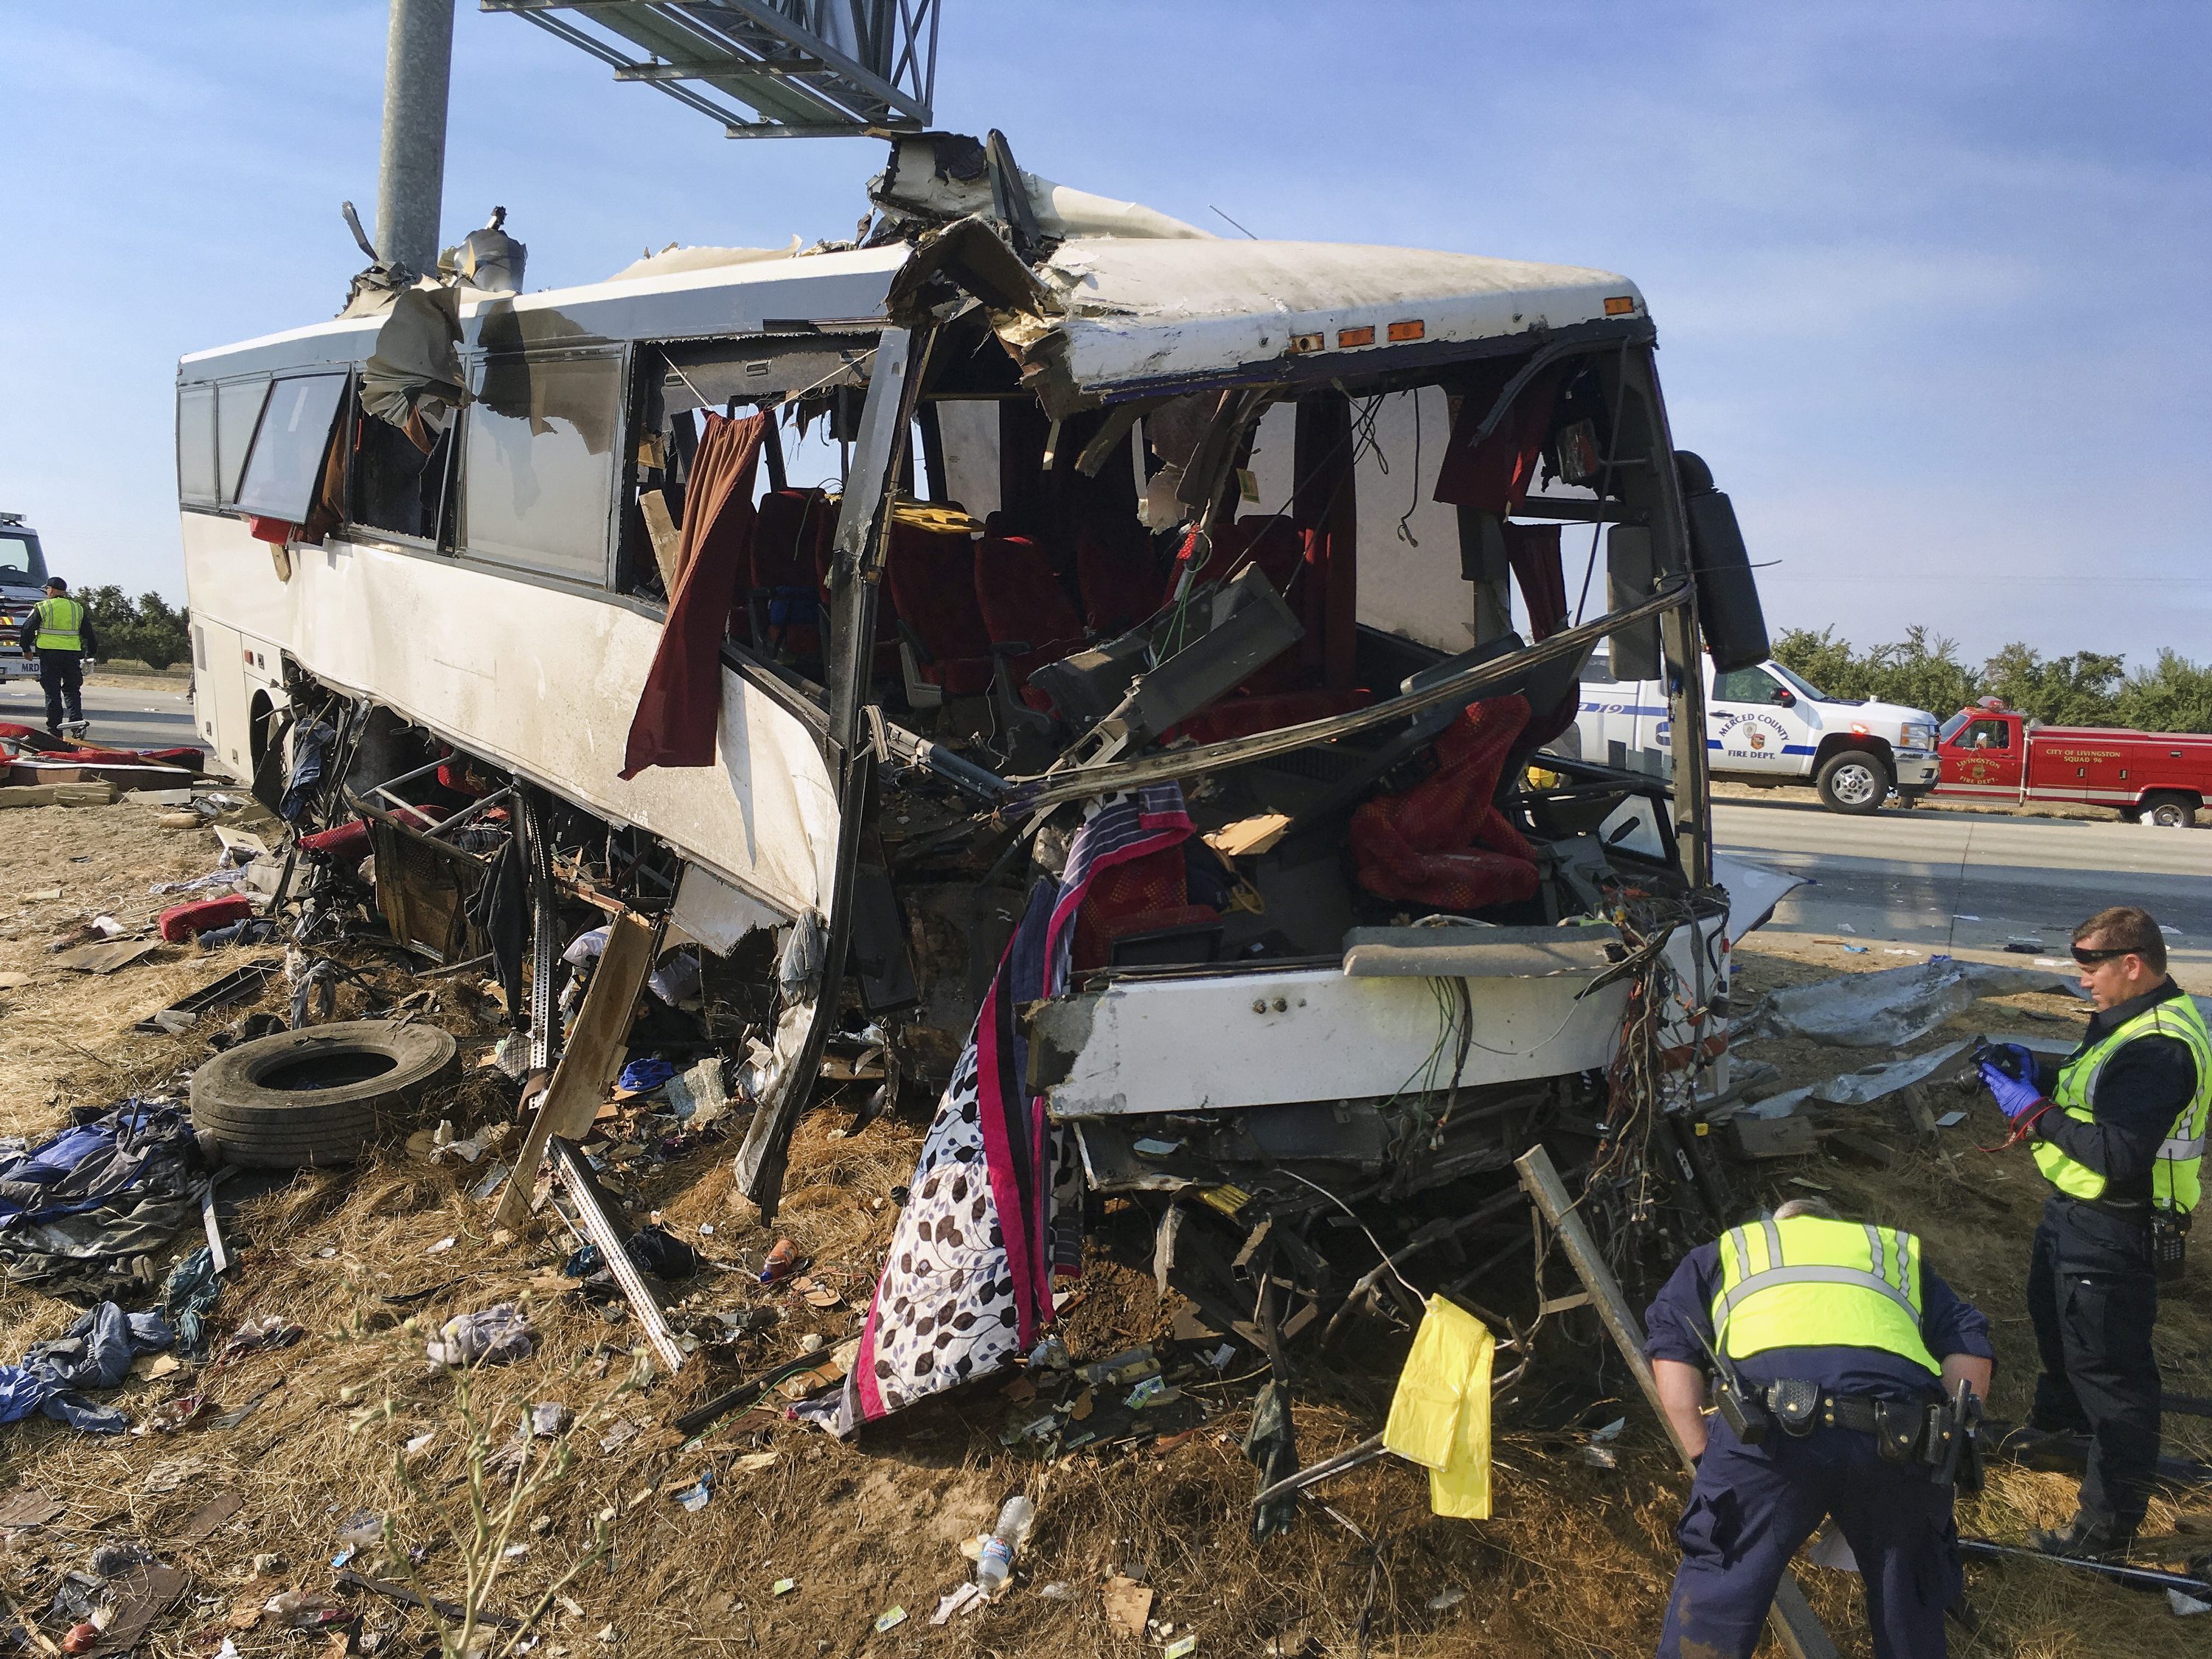 Traffic Safety Investigators Probing California Bus Crash That Killed 4